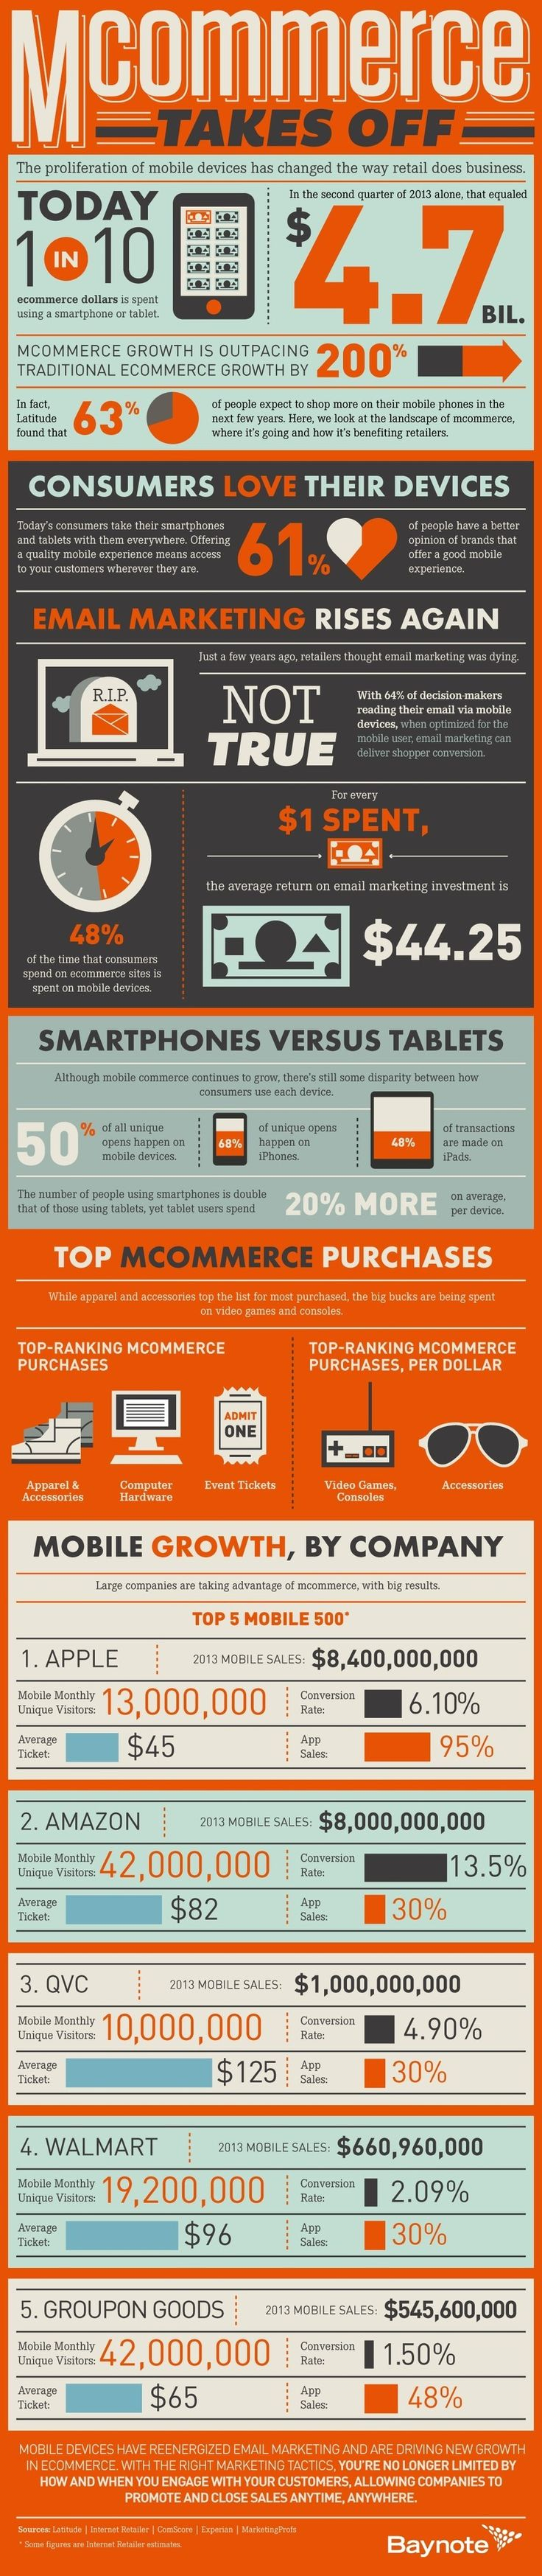 Infographic: MCommerce Growing 200% Faster than ECommerce